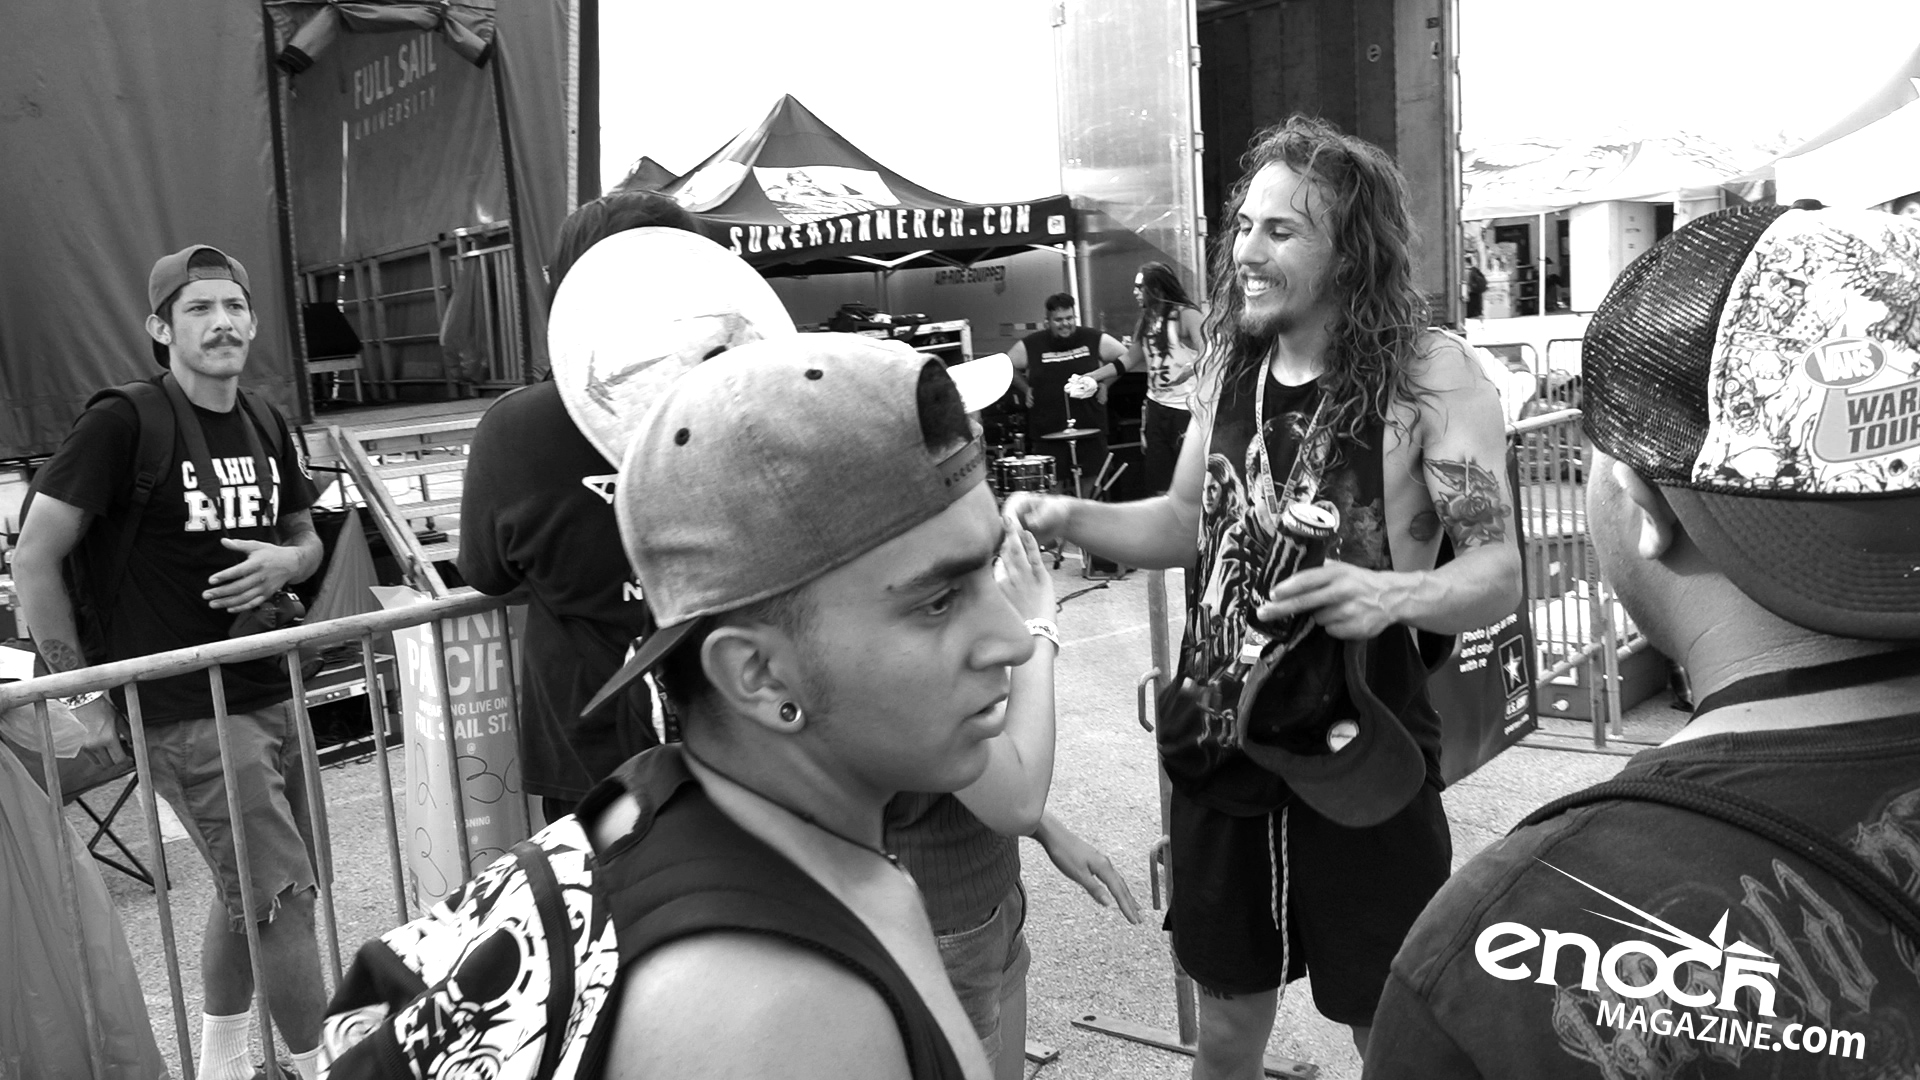 Silent Planet singer backstage with fans after show 2016 Vans Warped Tour in Houston, TX